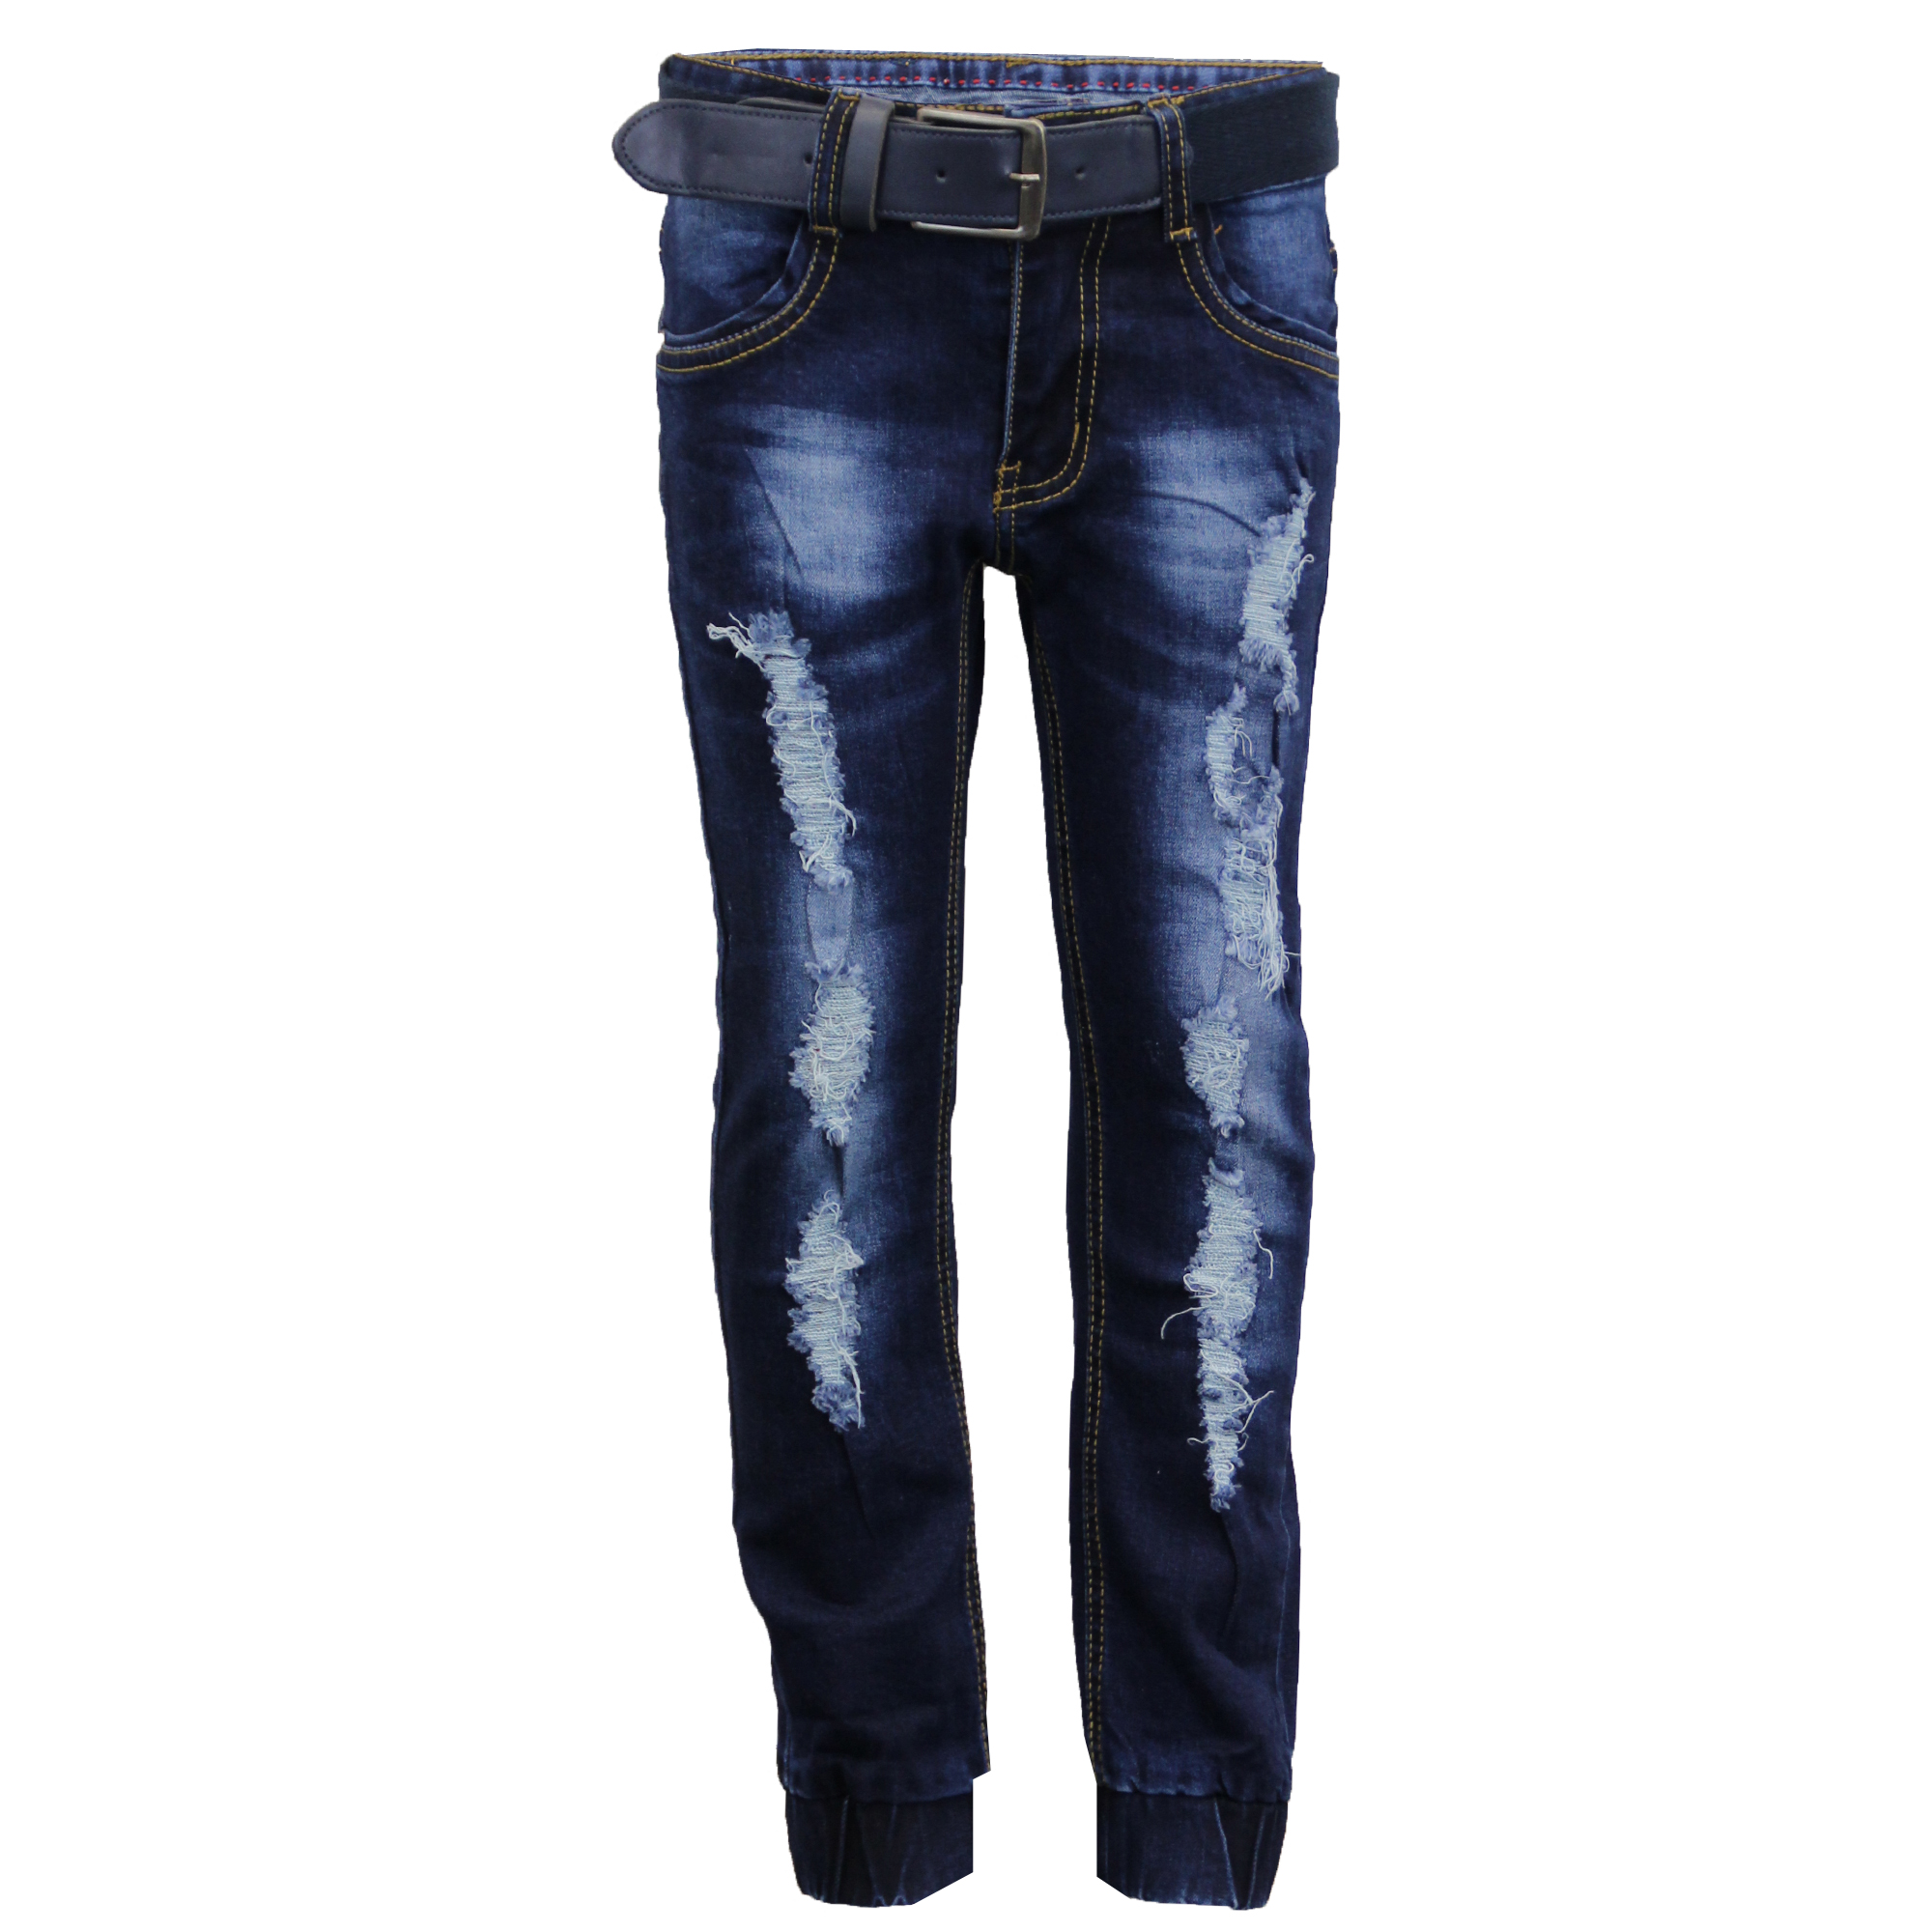 Tillys offers a lot of different styles of jeans and pants for boys including skinny, ripped jeans and slim jeans, along with twill, chino, and khaki pants. He'll also find his new favorite pair from brands he loves like RSQ, Levi's, Dickies, Volcom, and others.